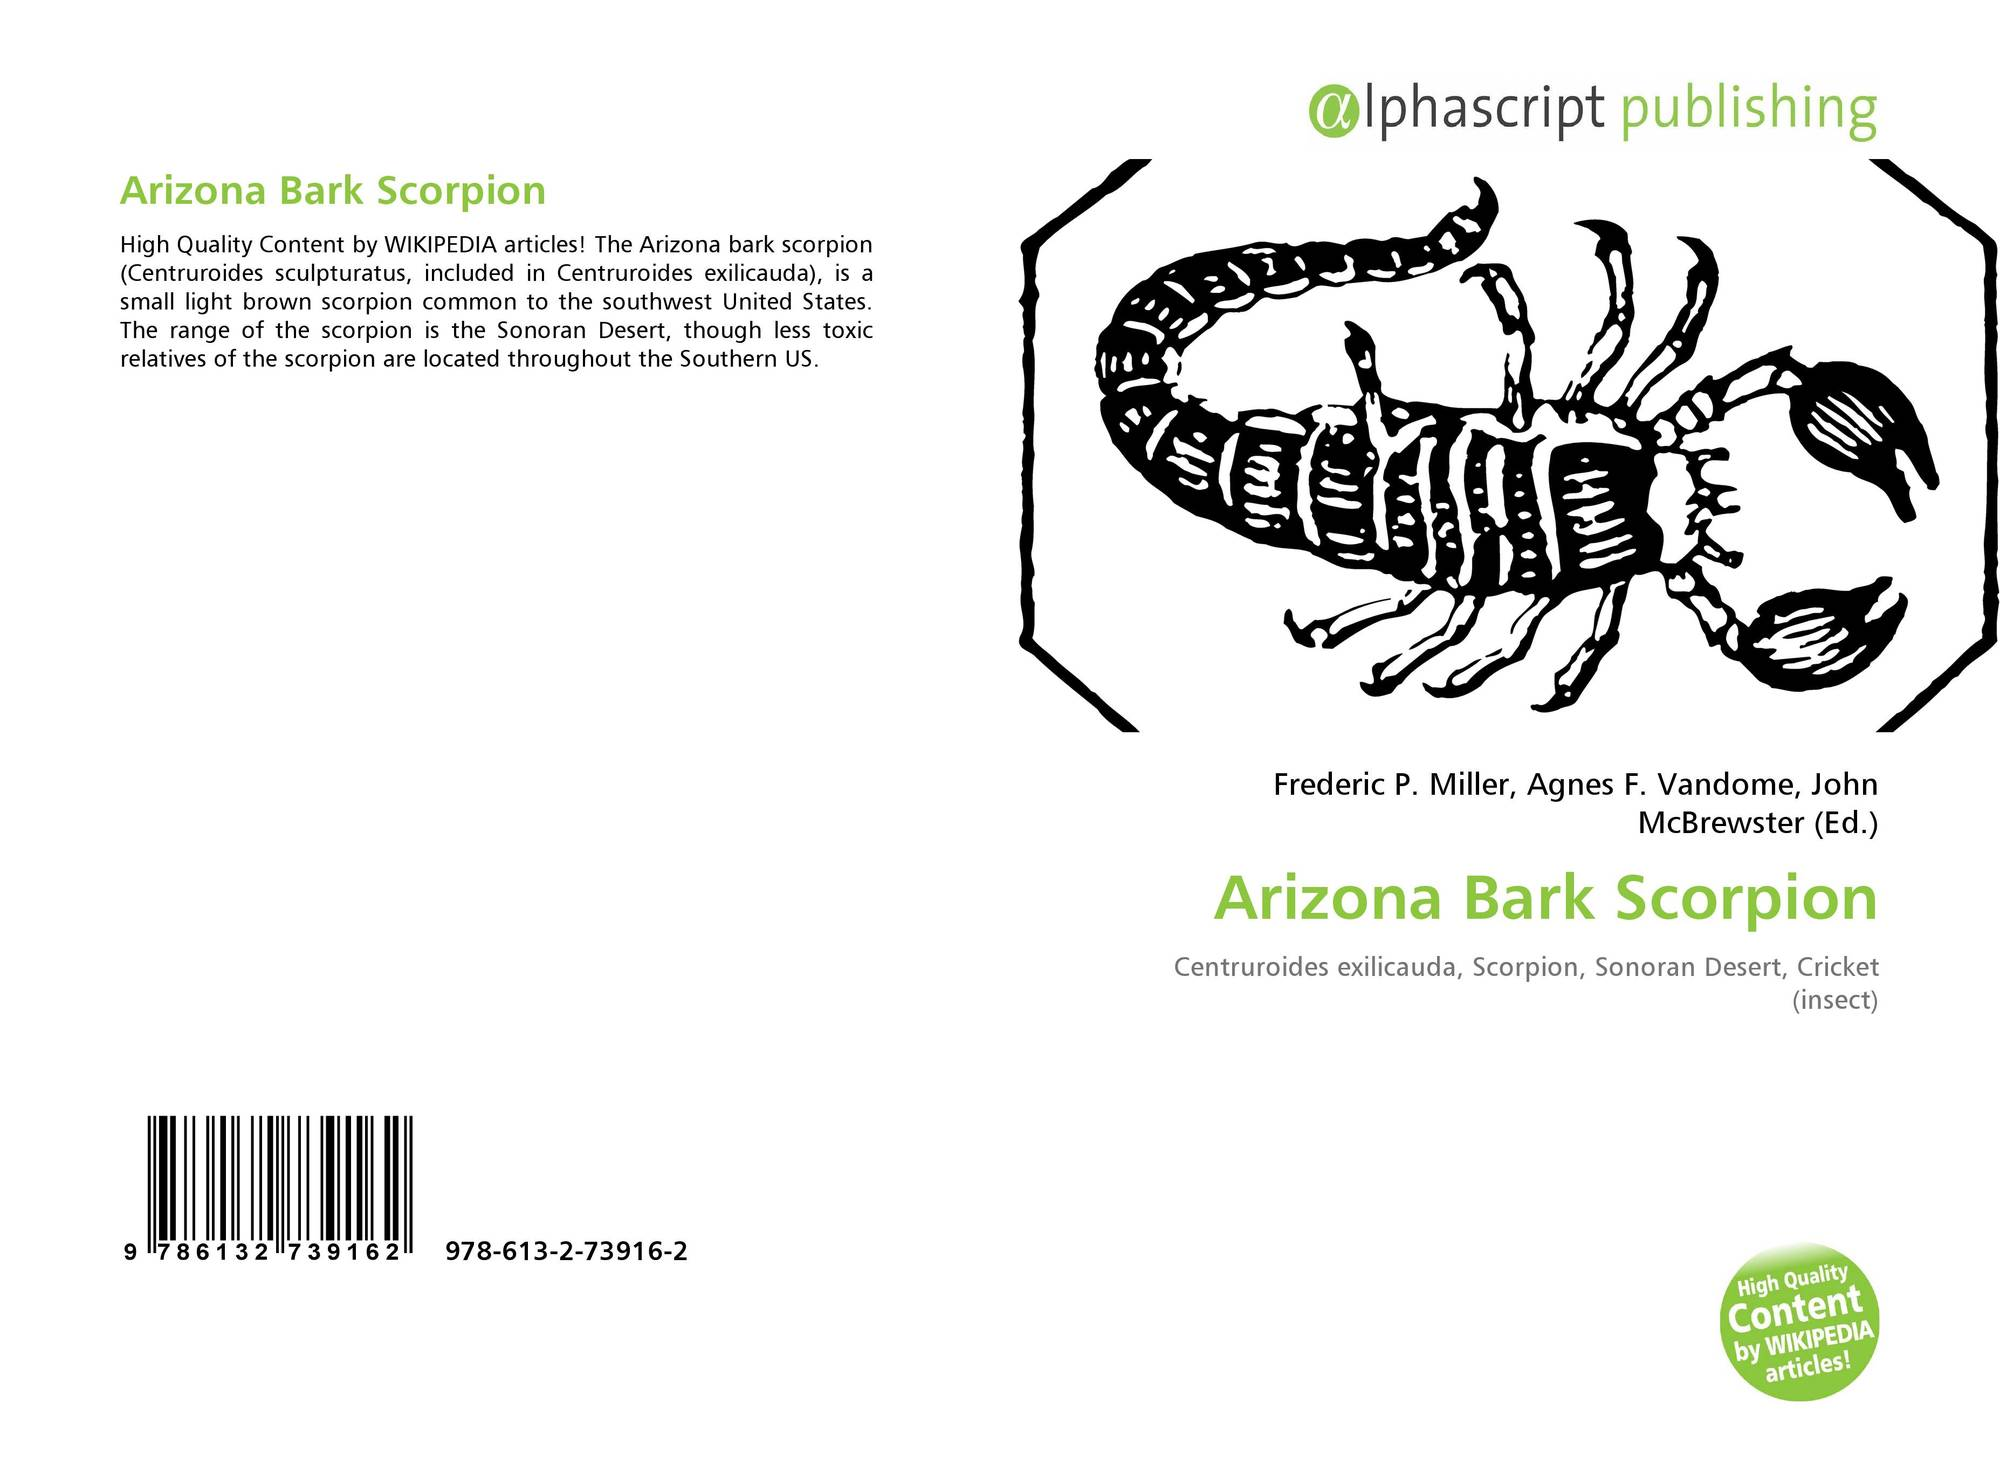 Arizona Bark Scorpion, 978-613-2-73916-2, 6132739165